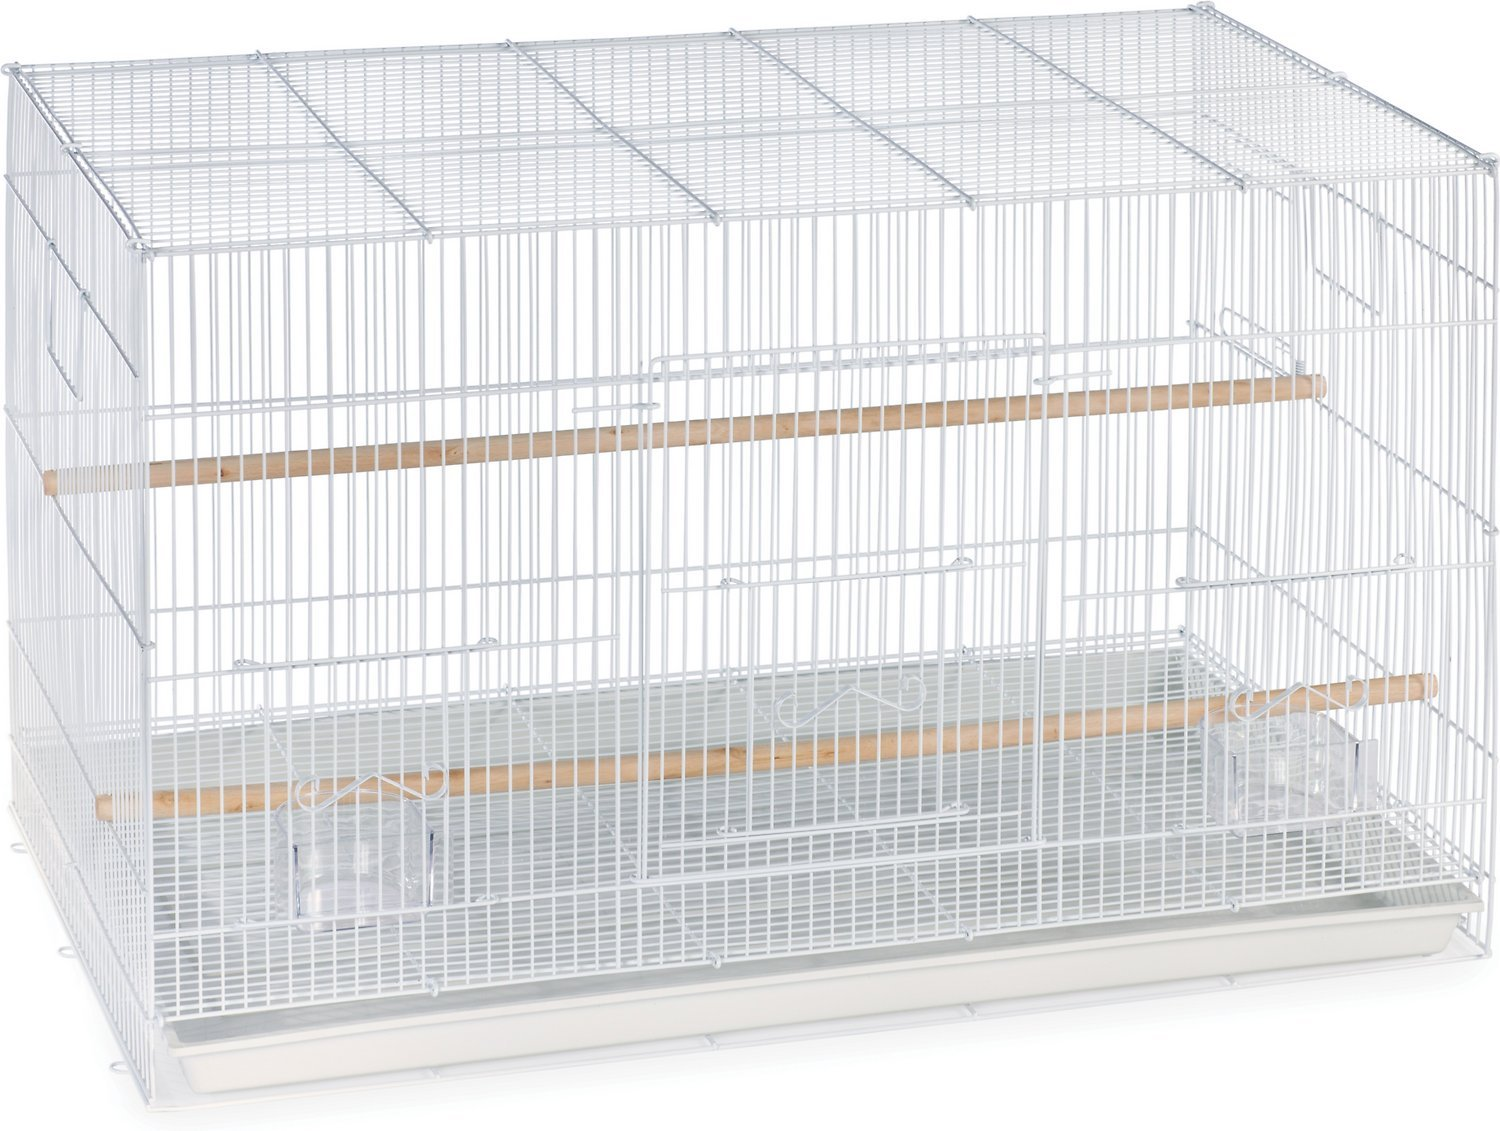 CAGE 24X16 FLIGHT ASST COLORS Store Pick-up Only